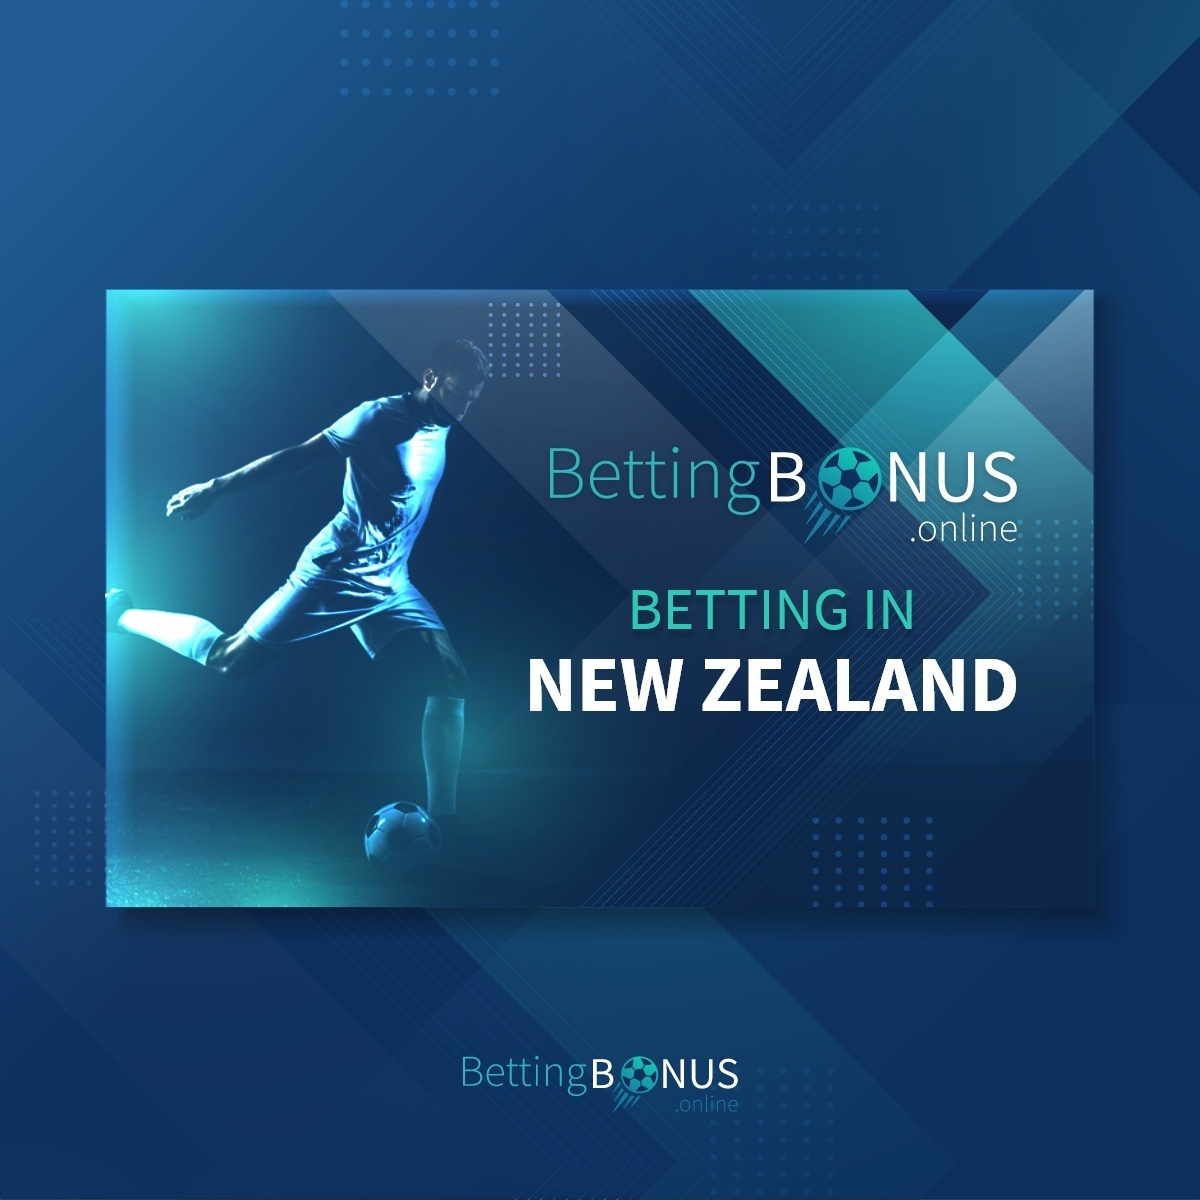 Sports Betting Sites in <span></noscript>New Zealand</span> - List of Sign Up Offers, Promotions & Free Bets